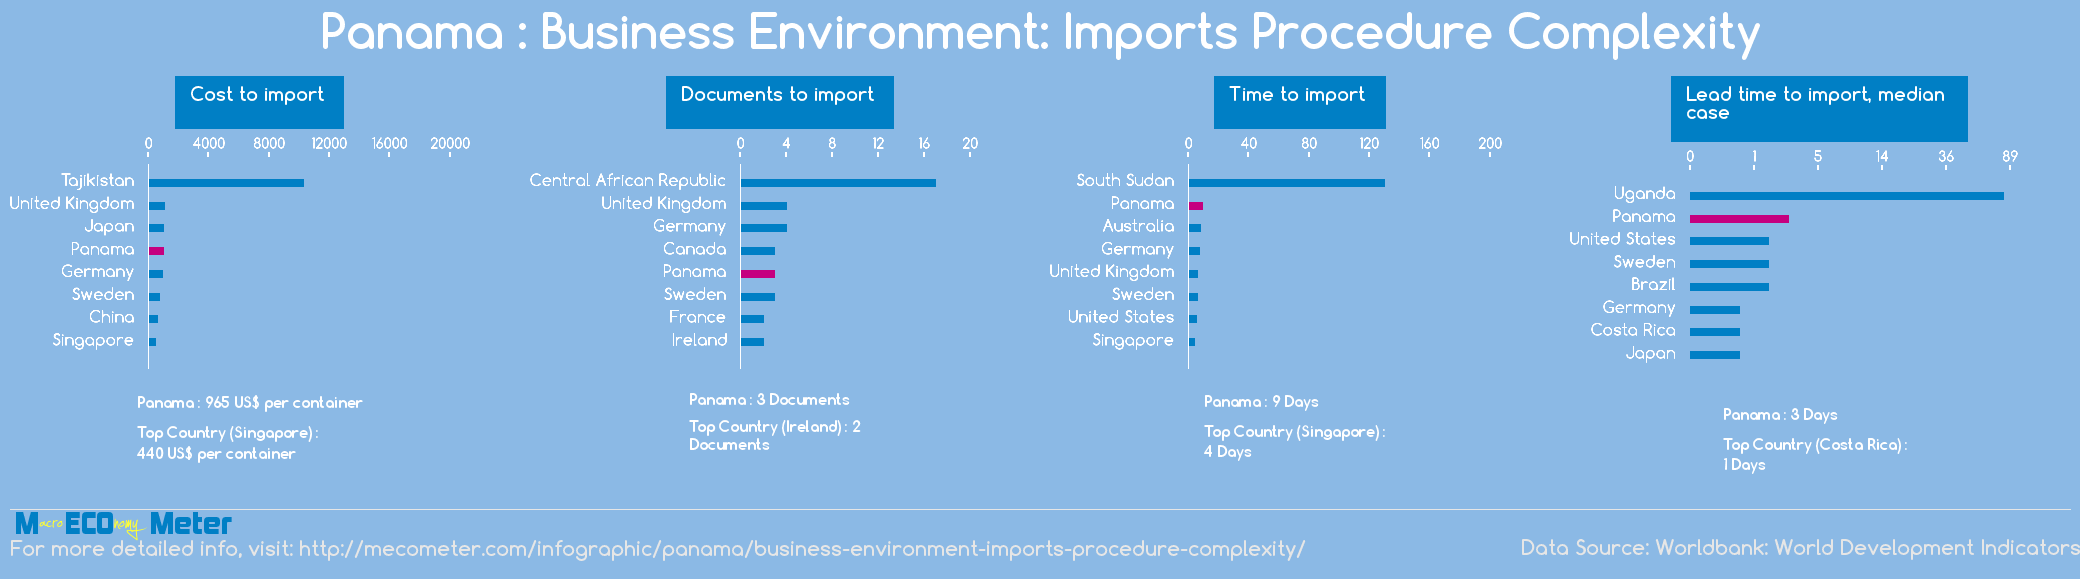 Panama : Business Environment: Imports Procedure Complexity